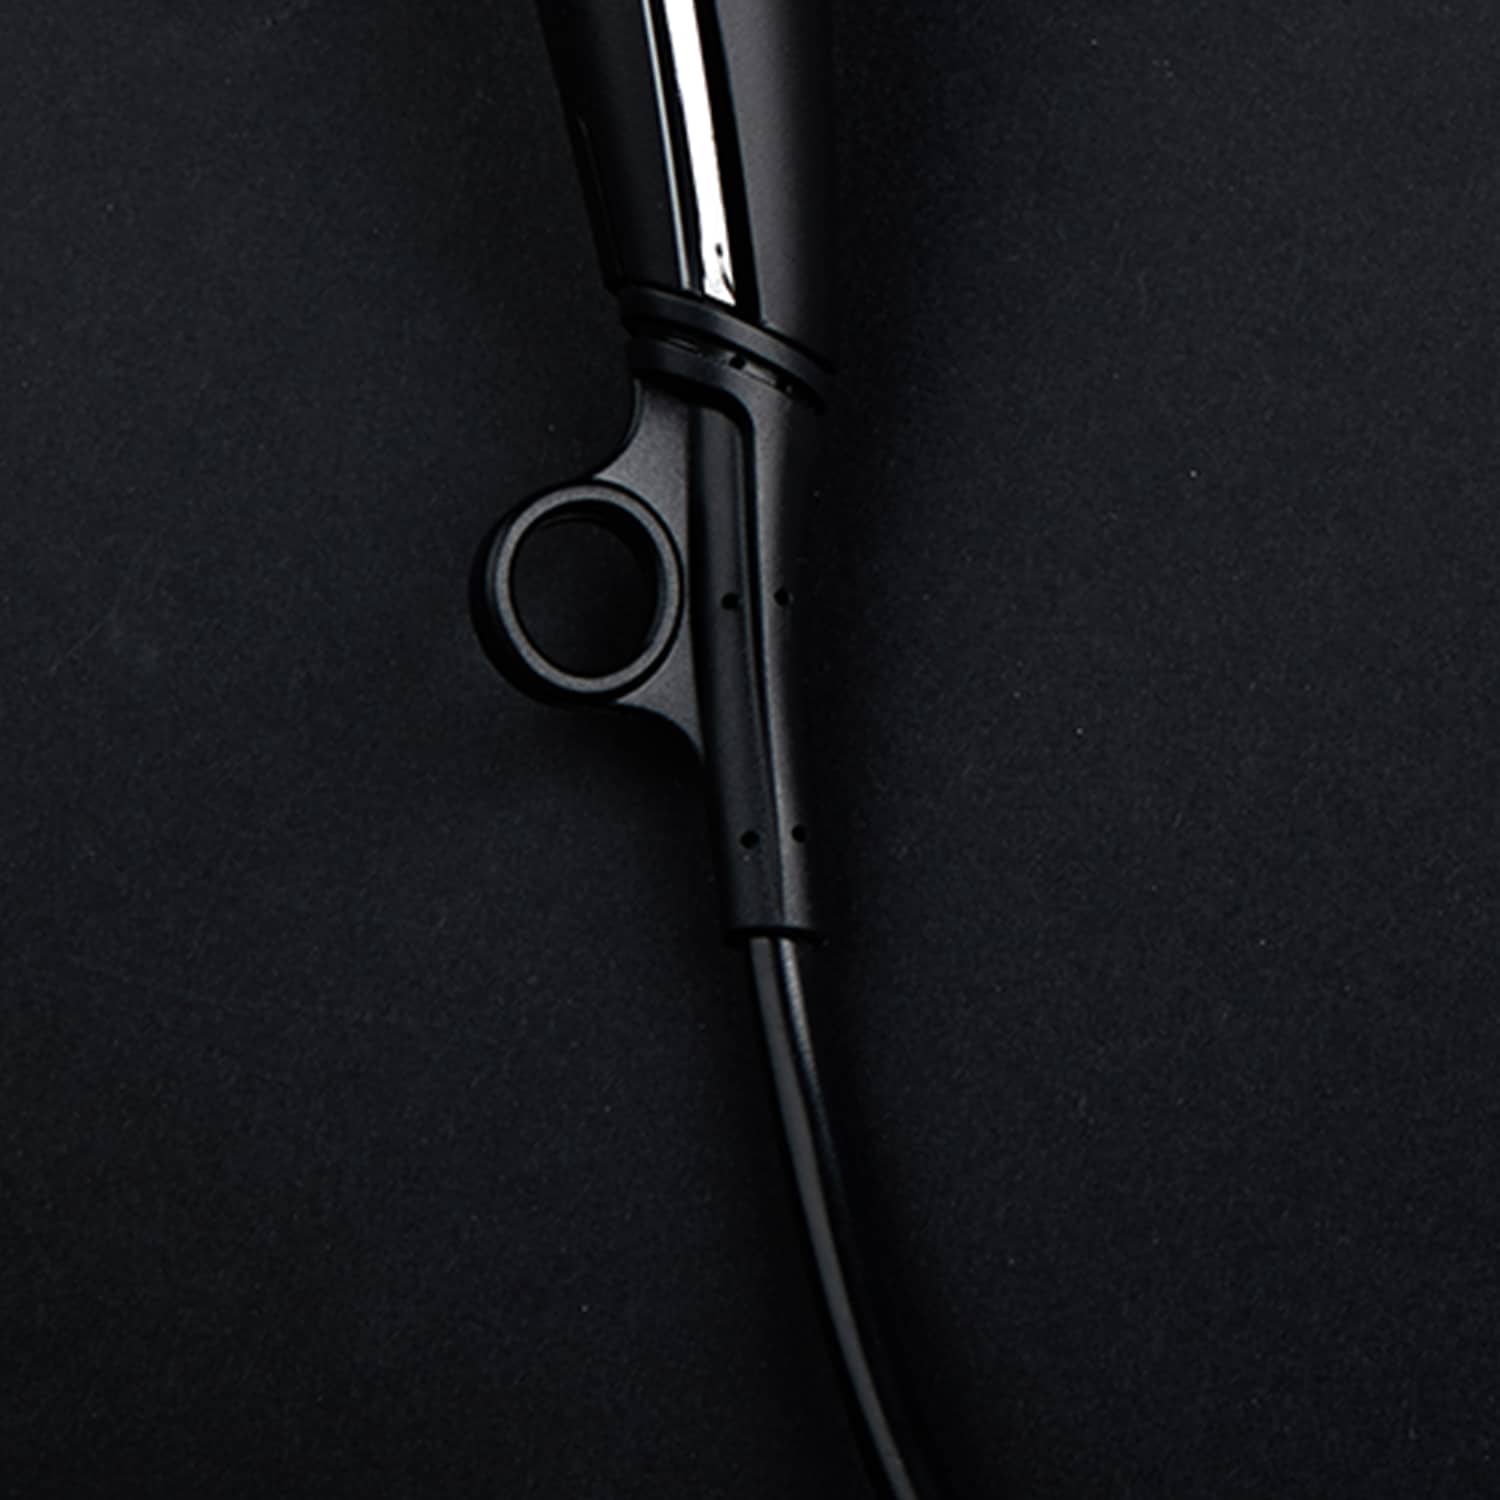 ghd air professional hair dryer power cable close-up